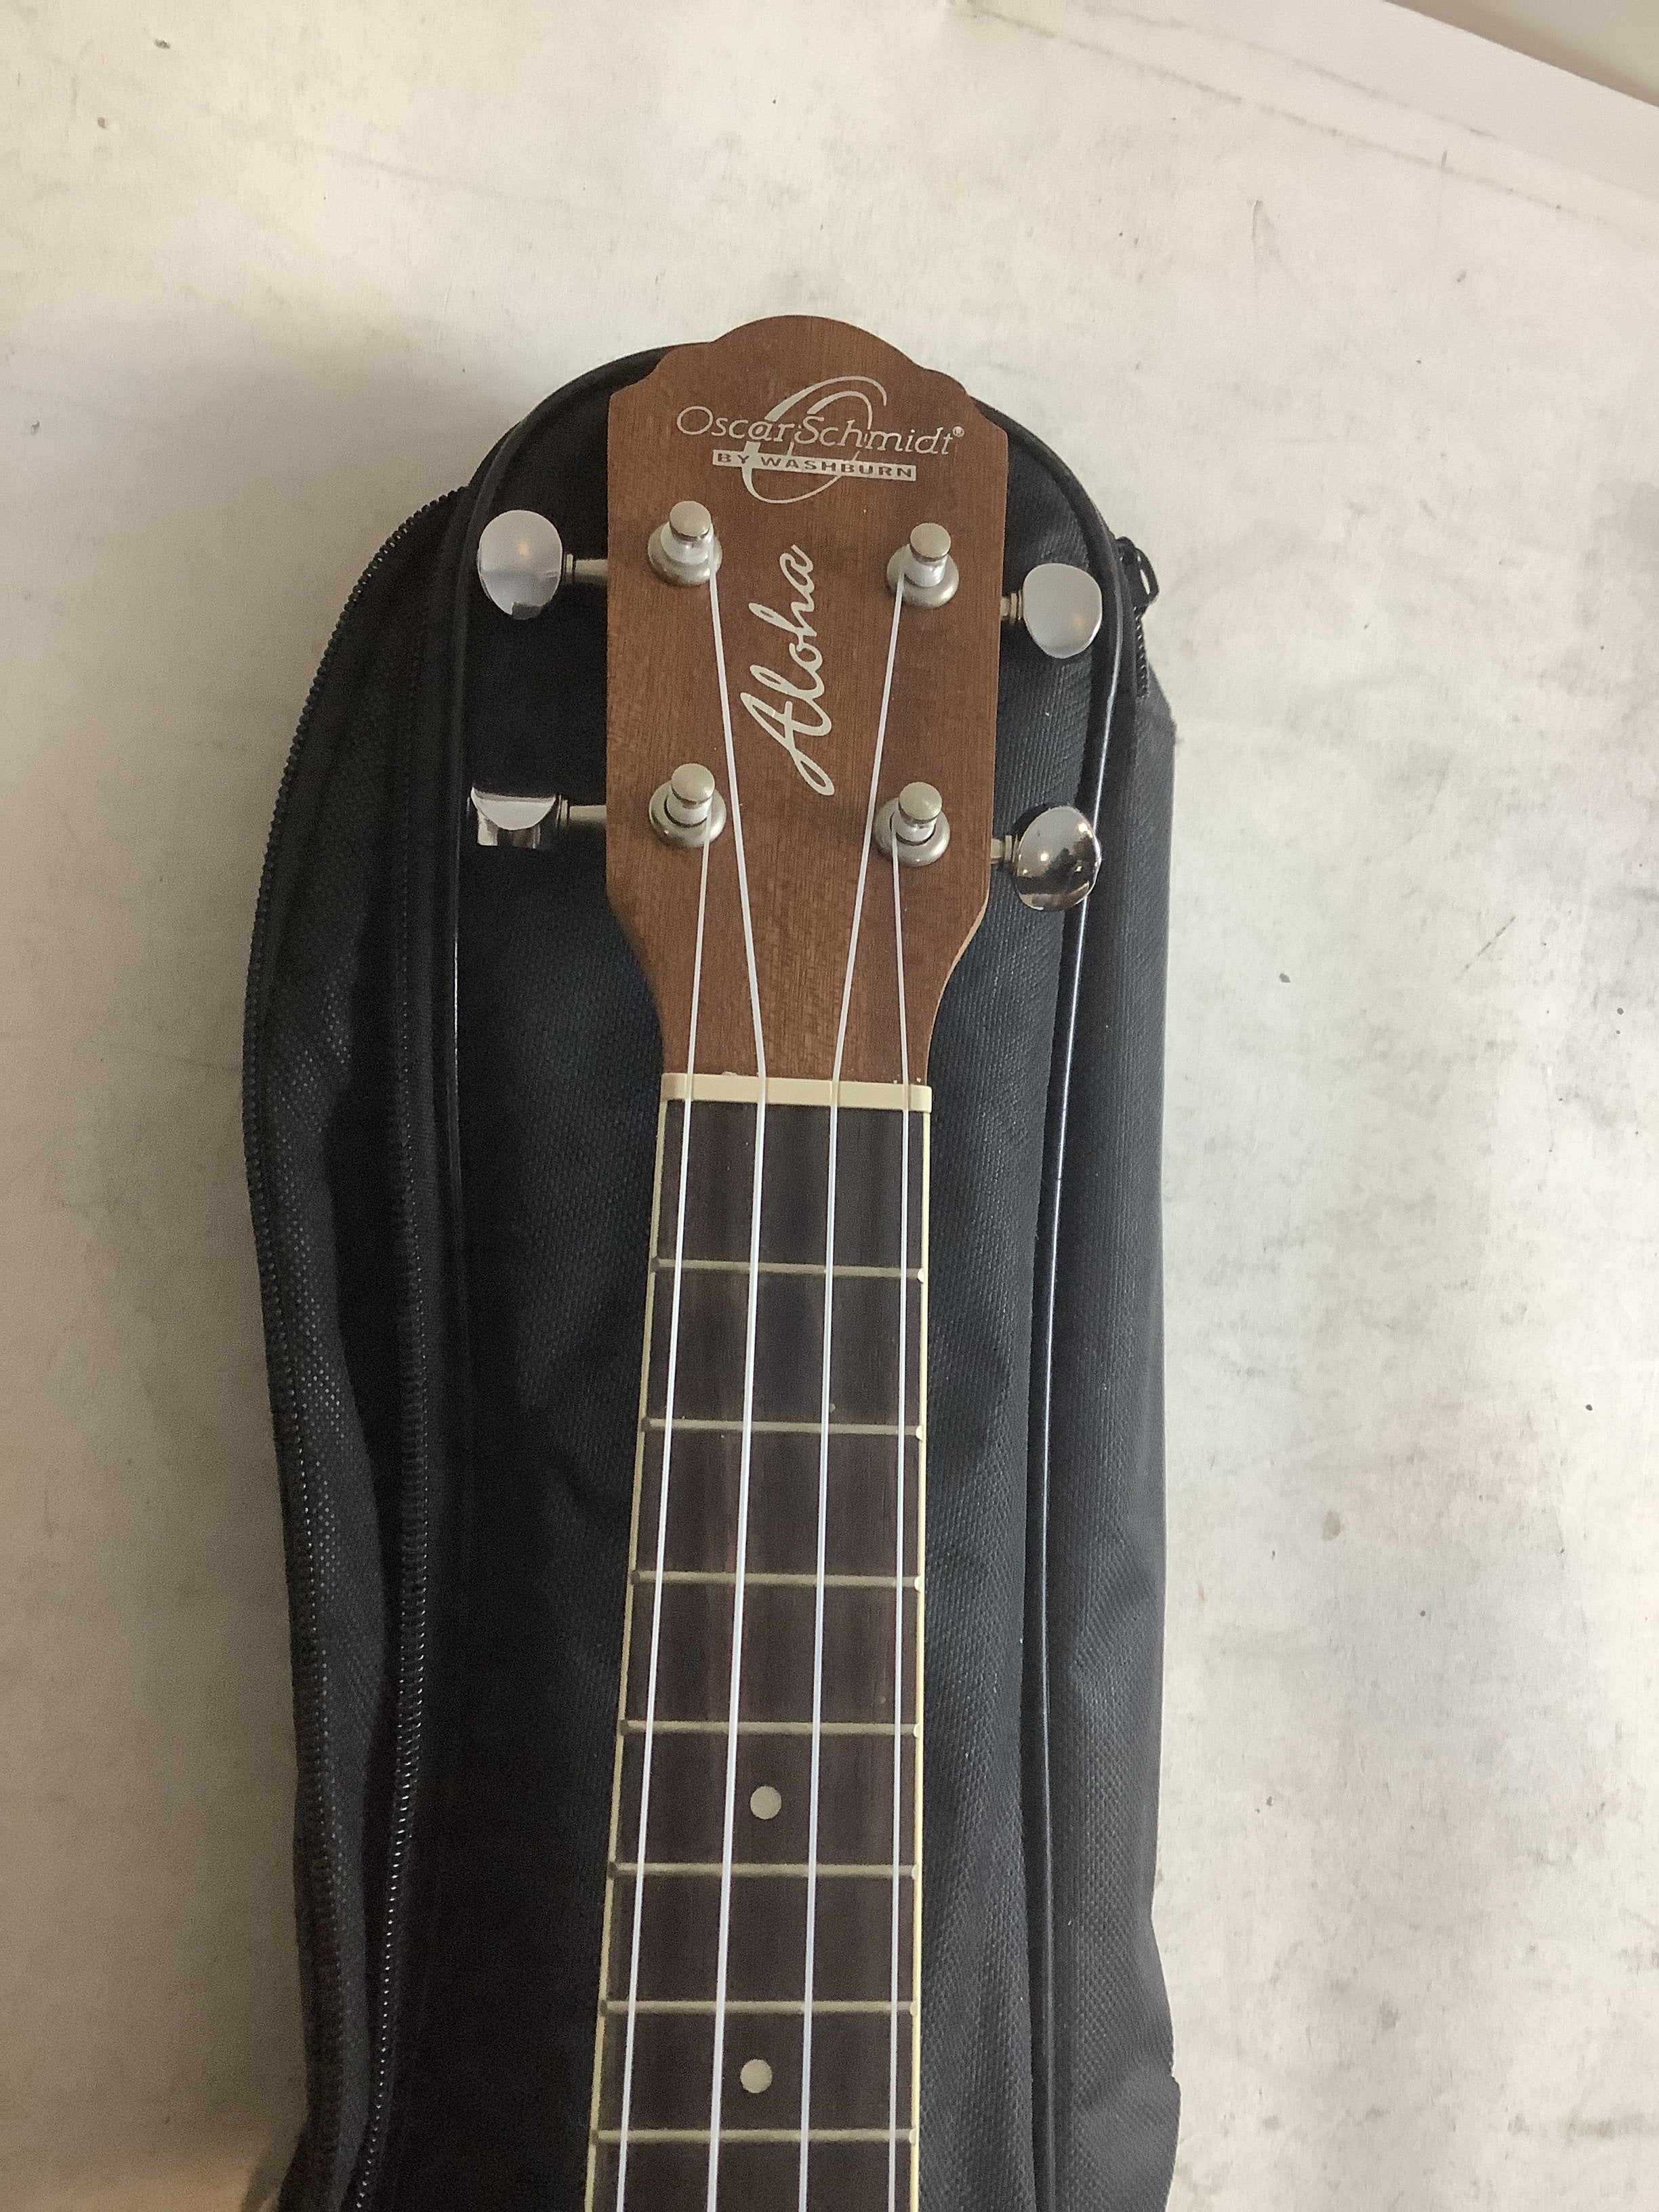 oscar schmidt ukulele  OU2 Brown with case and accessories